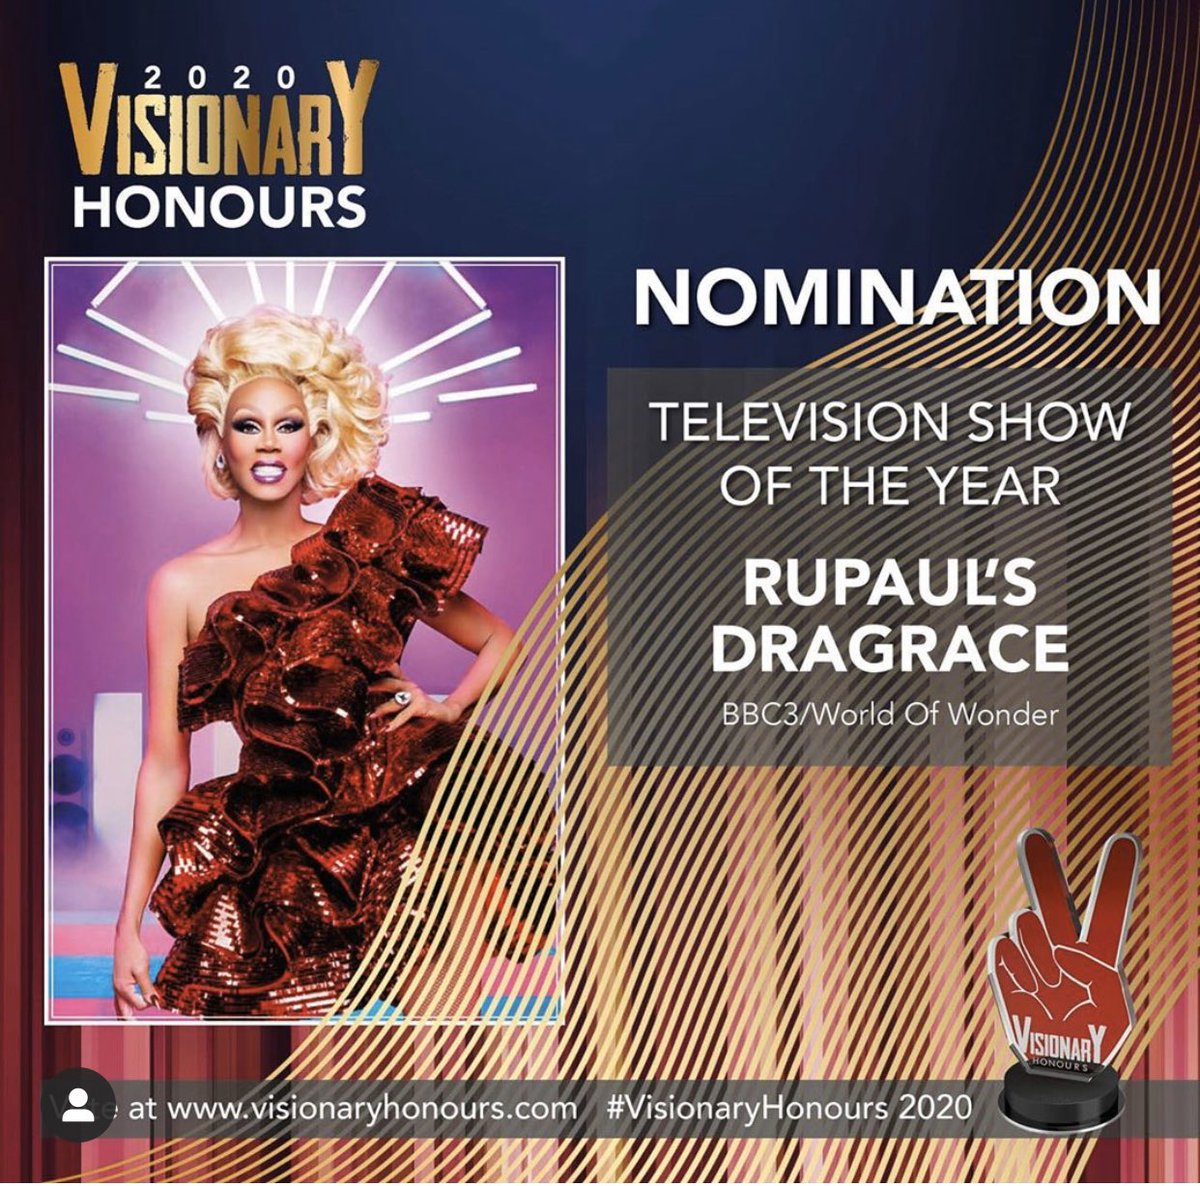 Please vote for @dragraceukbbc @WorldOfWonder @bbcthree